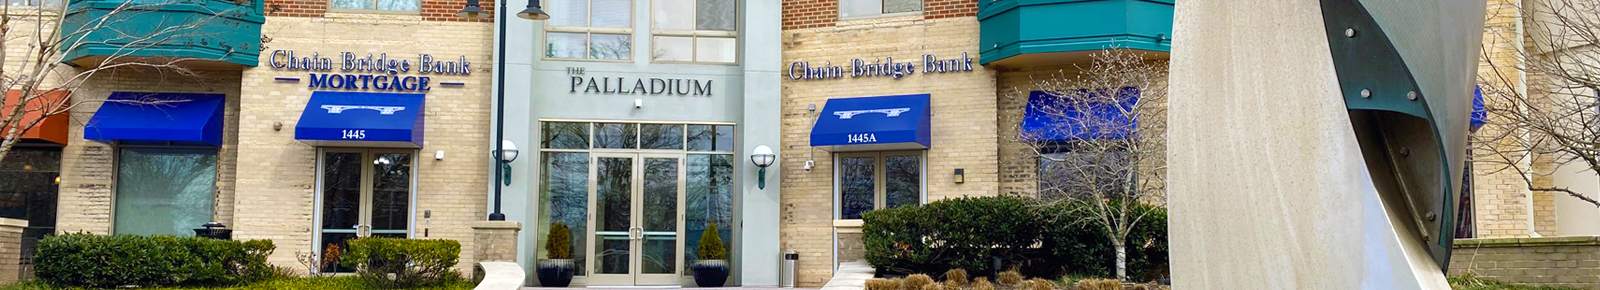 Chain Bridge Bank office